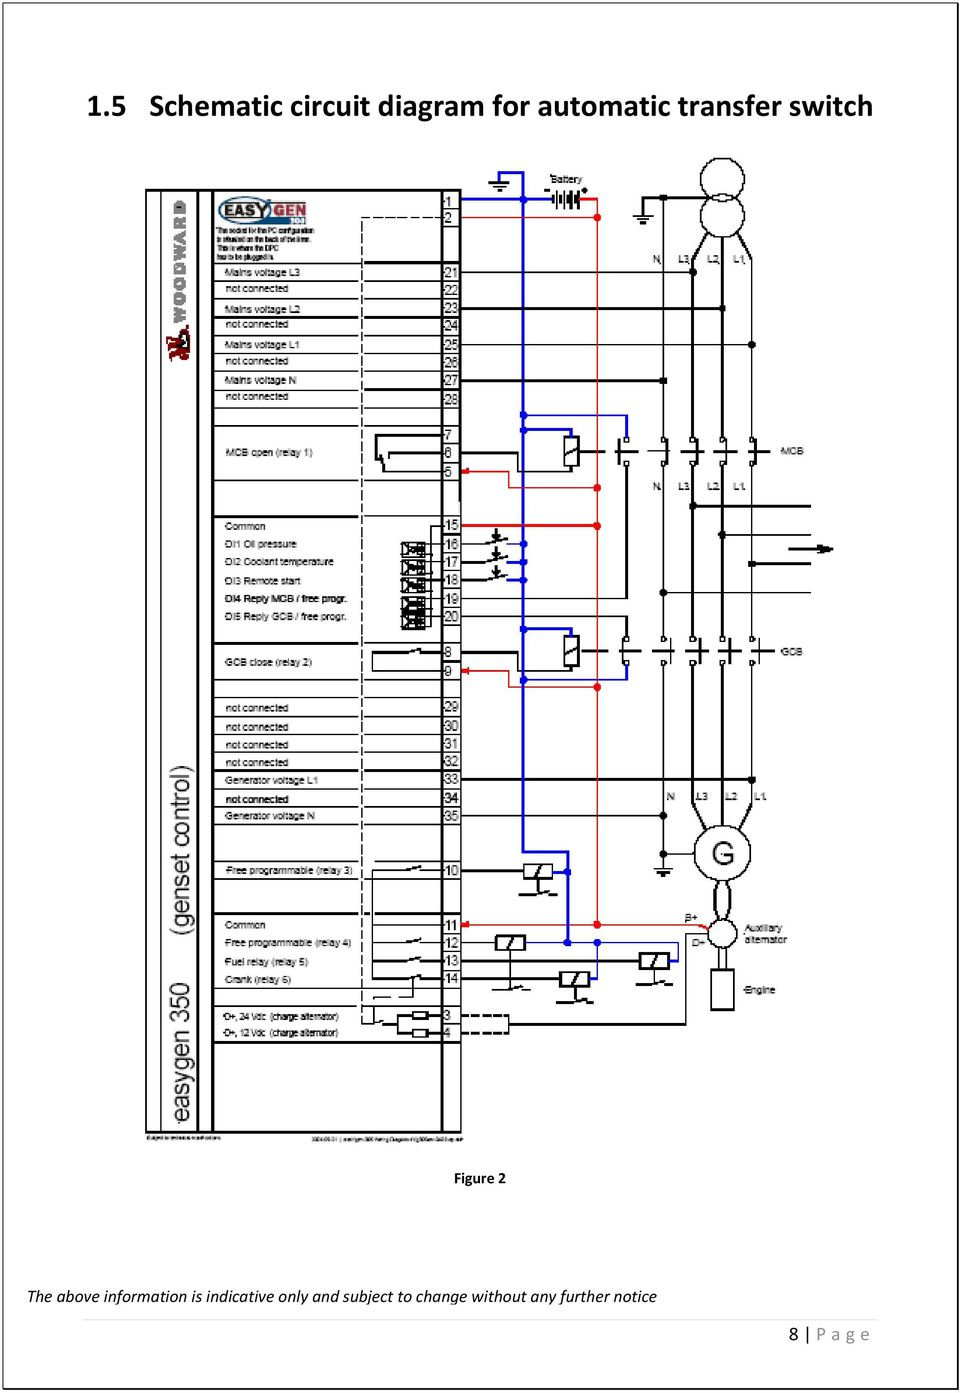 medium resolution of reliance generator transfer switch wiring diagram above information is indicative only and